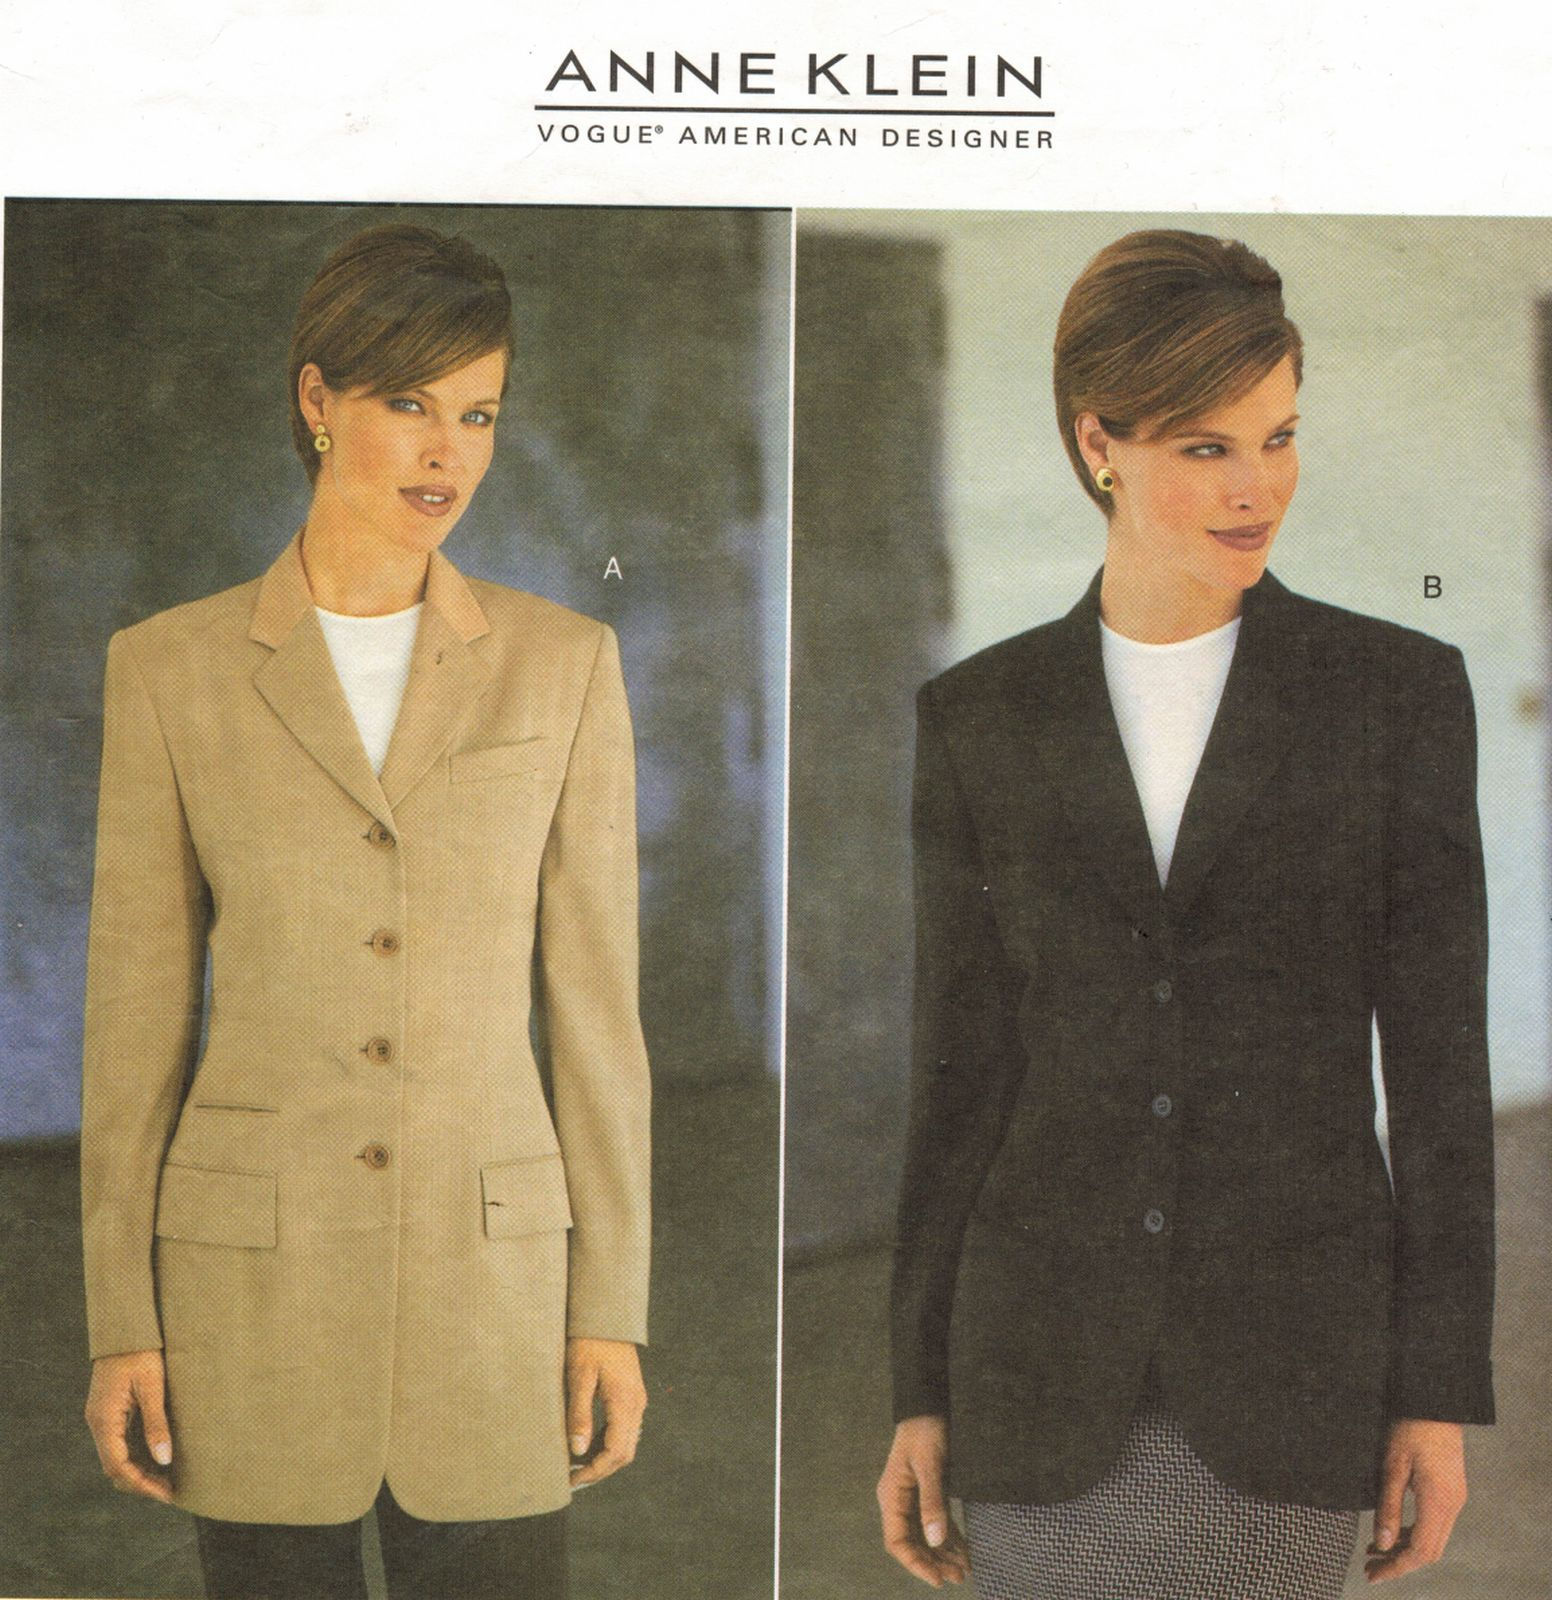 Primary image for Misses Vogue Anne Klein American Designer Loose Fit Jacket Sew Pattern 12-16